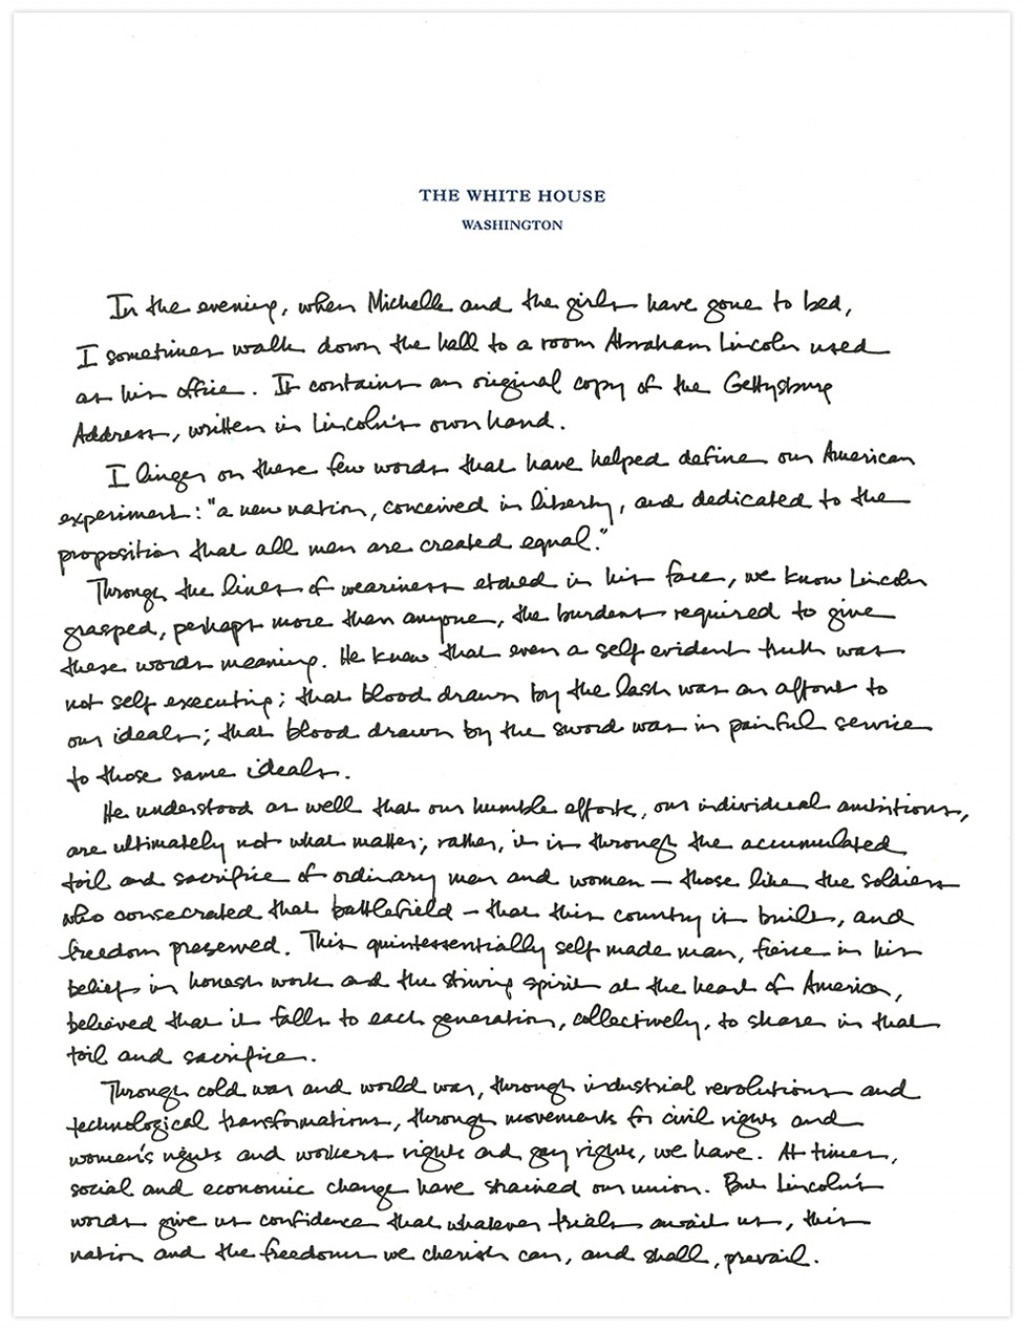 001 Essay Example Potus Gettysburg Web 2013 Barack Wondrous Obama Examples Pdf In English Large